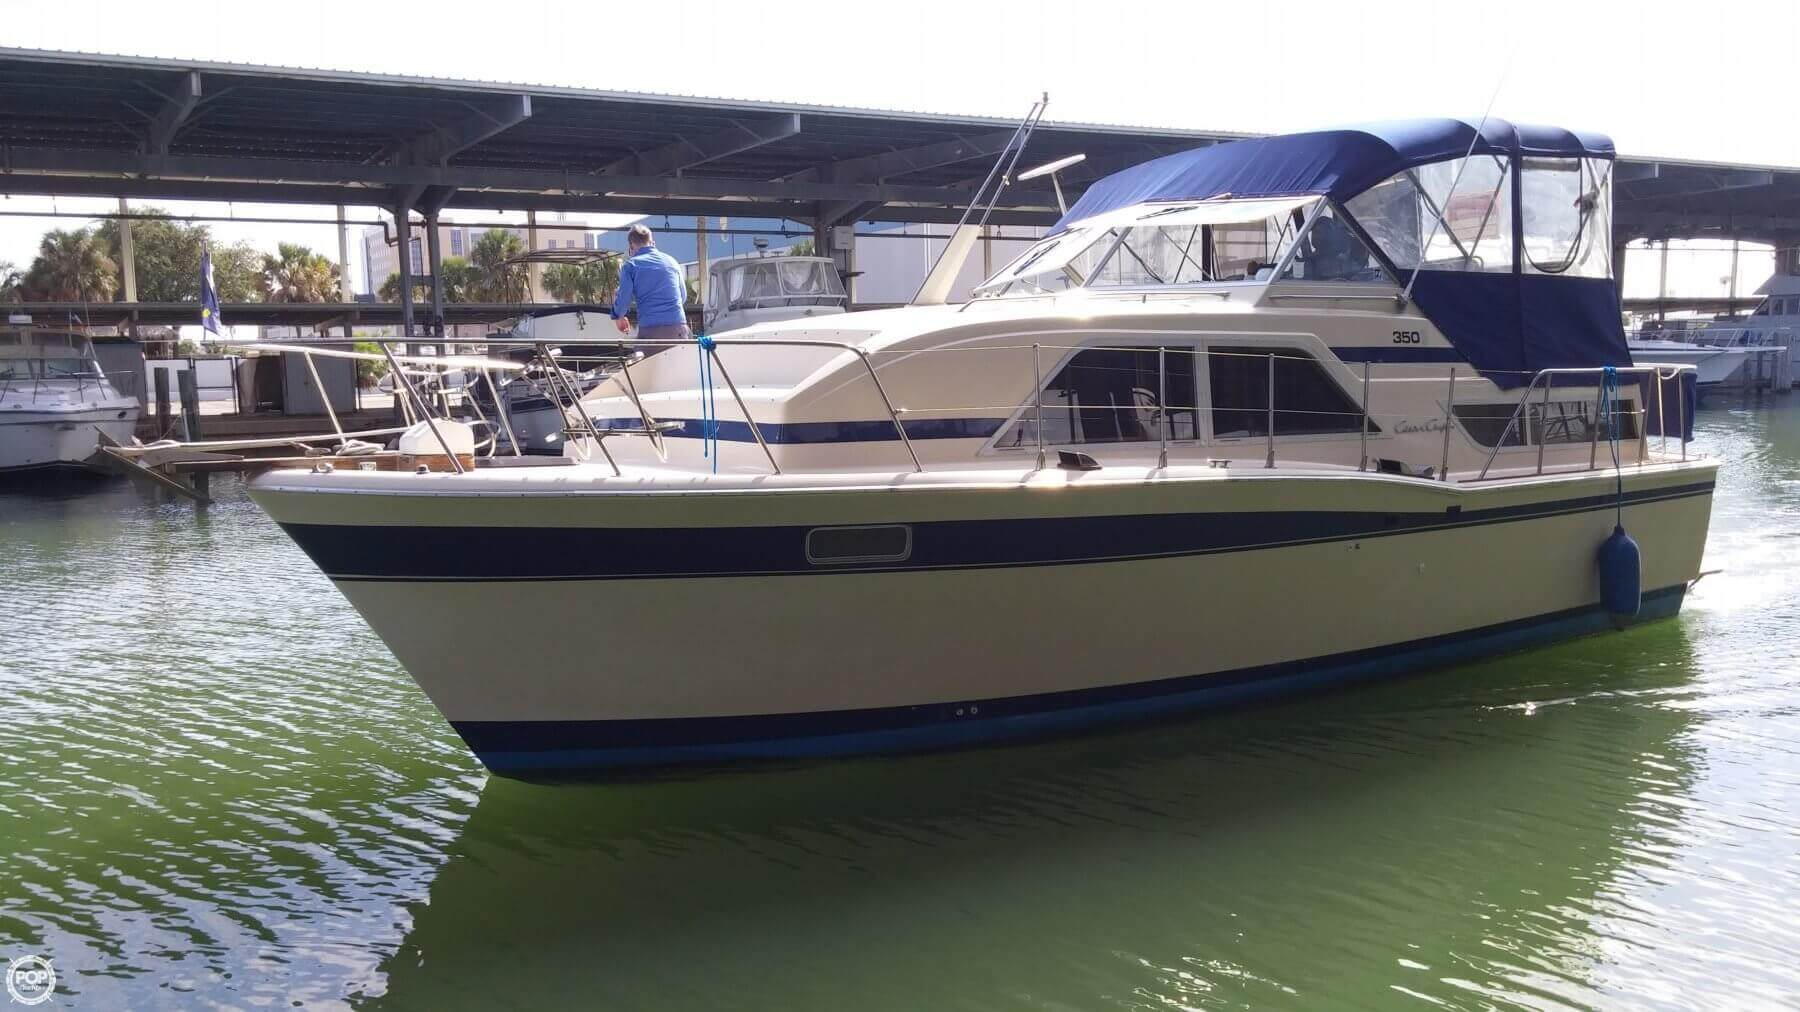 1982 Chris-Craft 350 Catalina For Sale